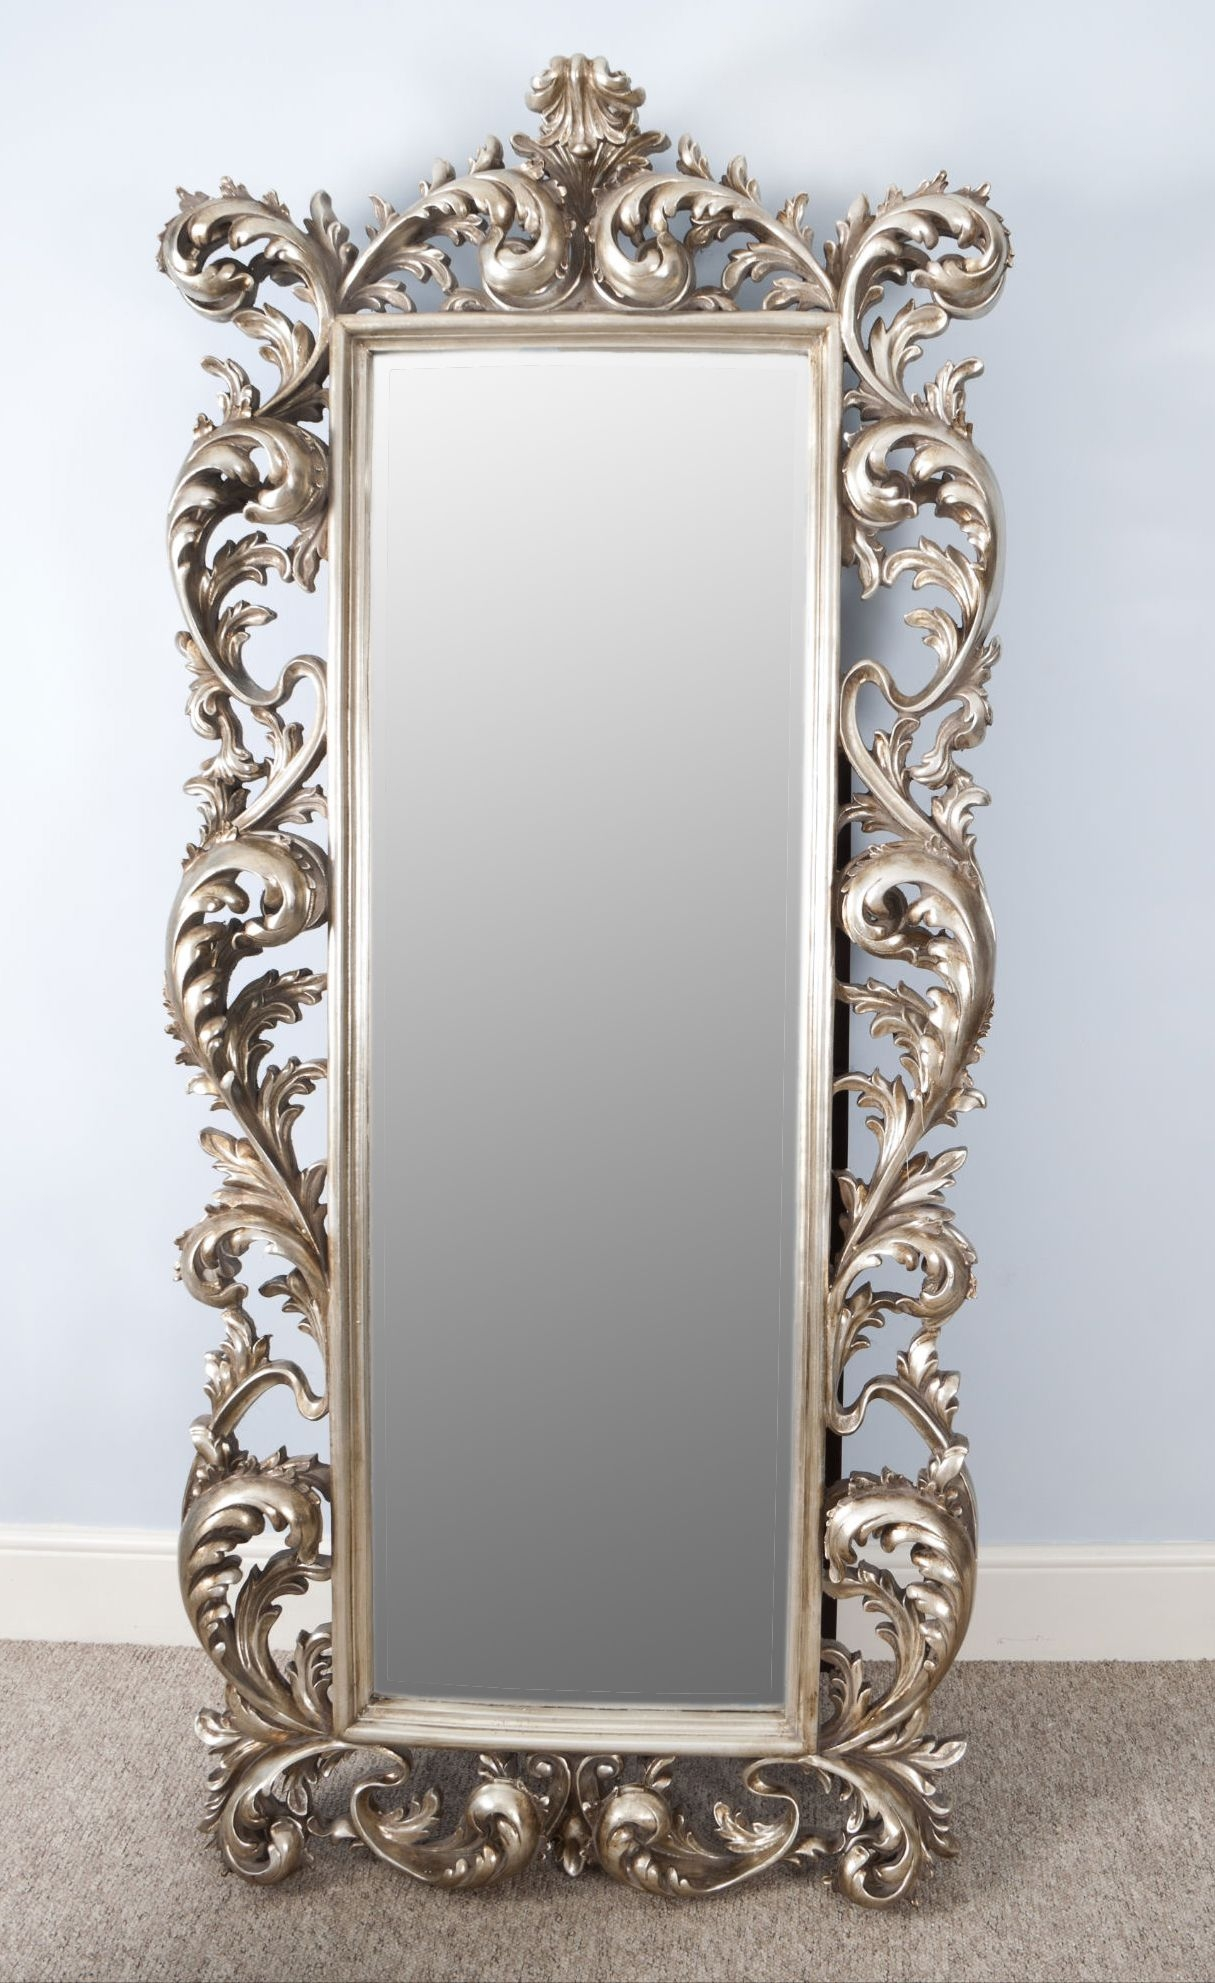 Classic Impression On Antique Wall Mirrors Vwho With Regard To Vintage Looking Mirrors (View 6 of 15)